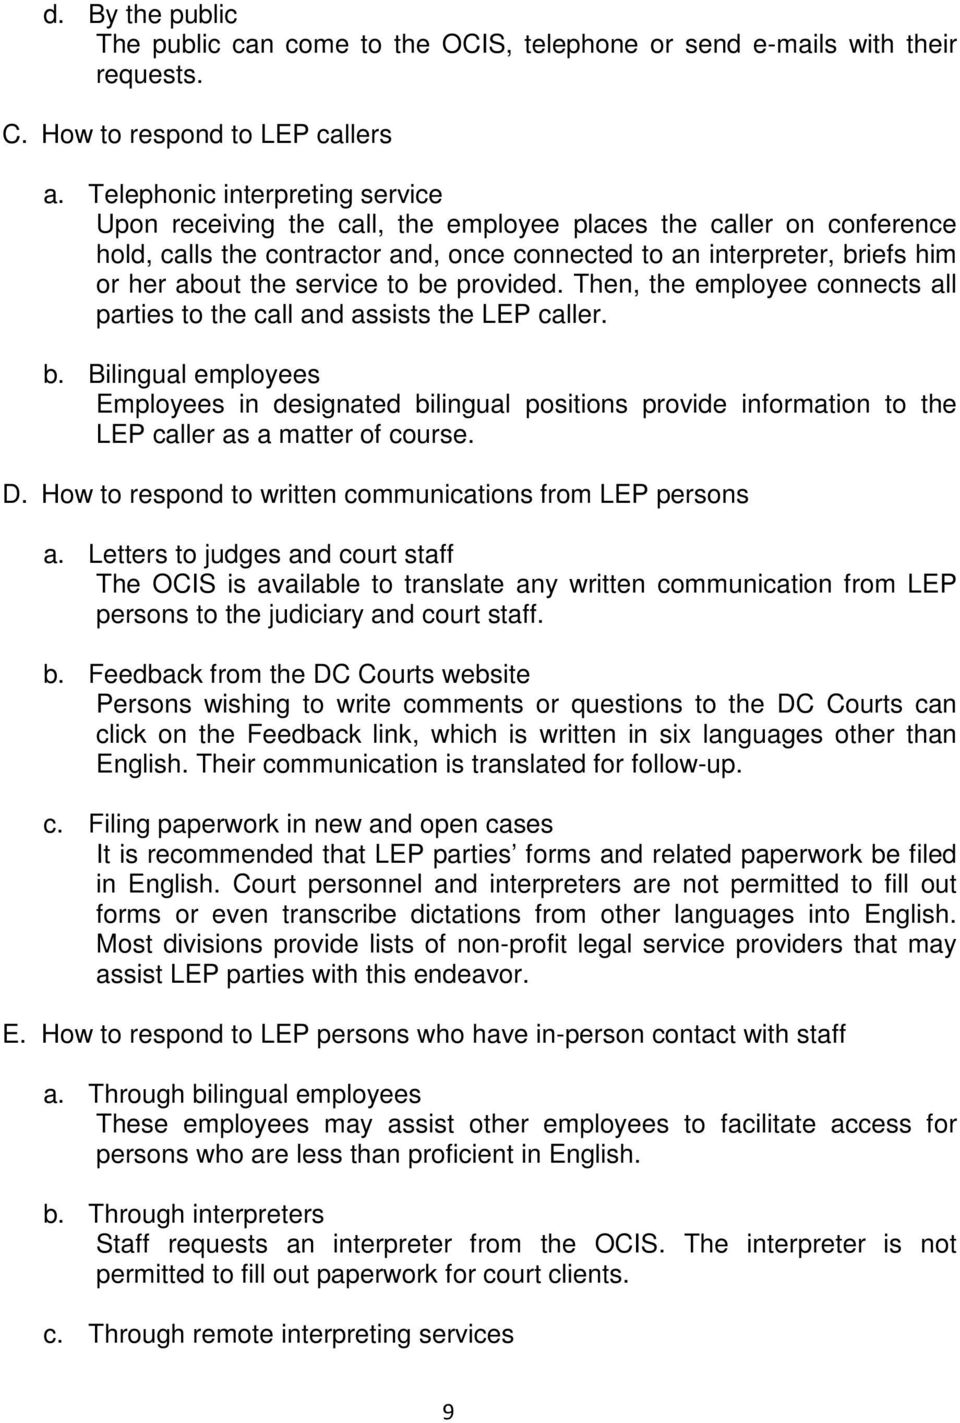 service to be provided. Then, the employee connects all parties to the call and assists the LEP caller. b. Bilingual employees Employees in designated bilingual positions provide information to the LEP caller as a matter of course.